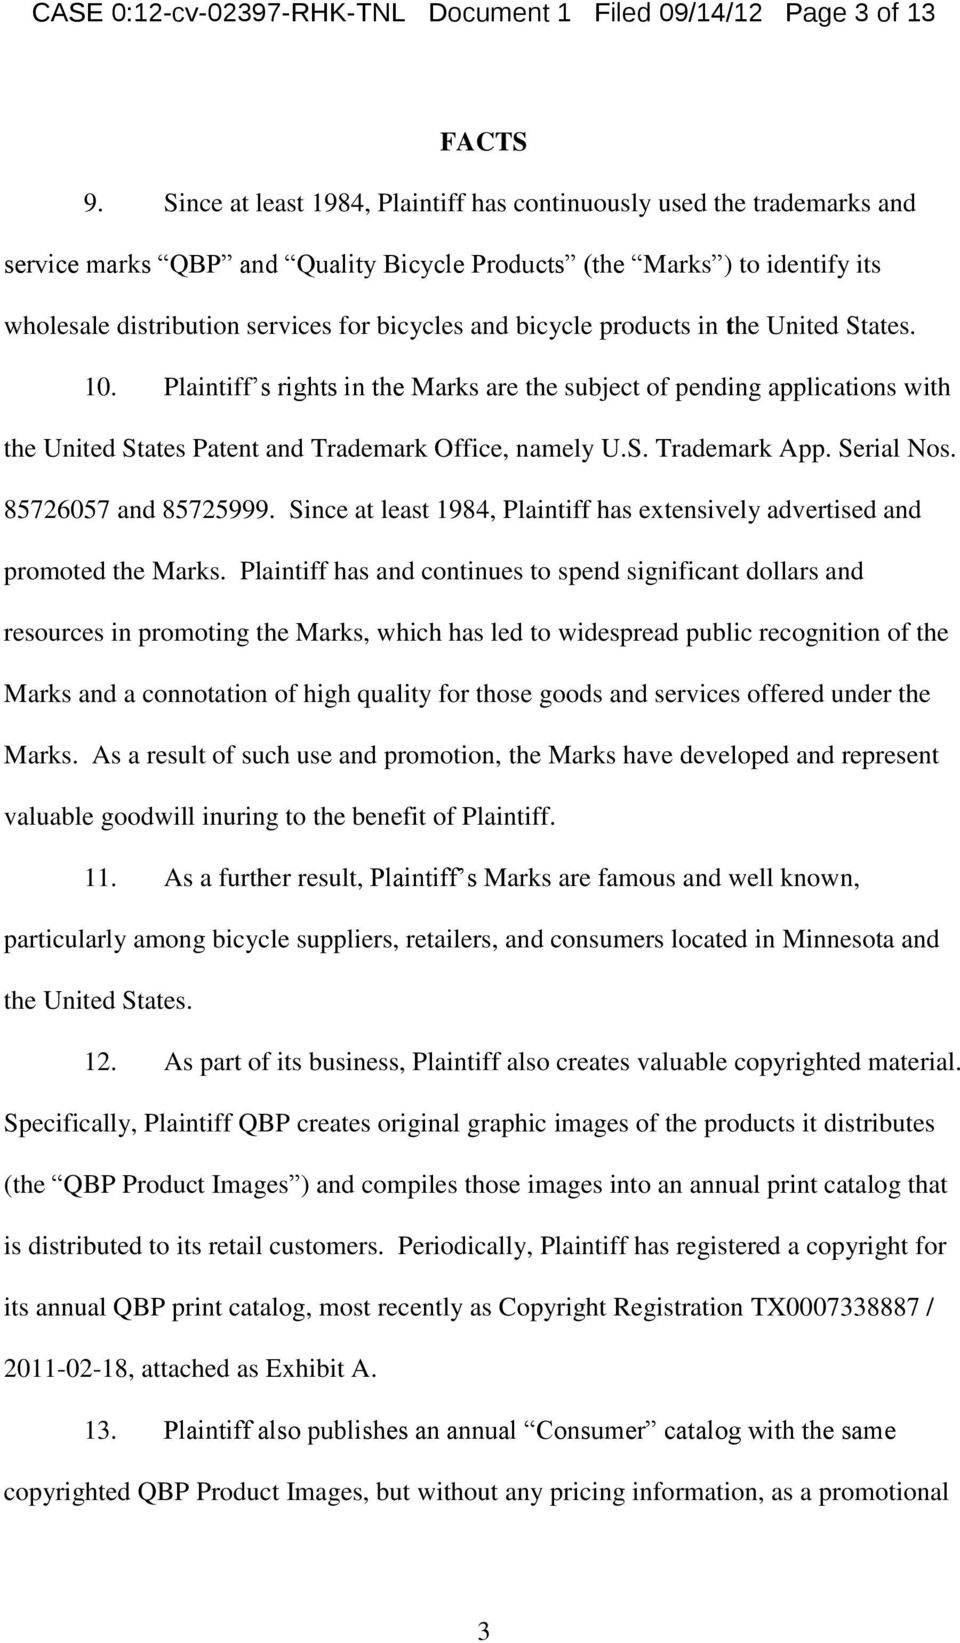 bicycle products in the United States. 10. Plaintiff s rights in the Marks are the subject of pending applications with the United States Patent and Trademark Office, namely U.S. Trademark App.